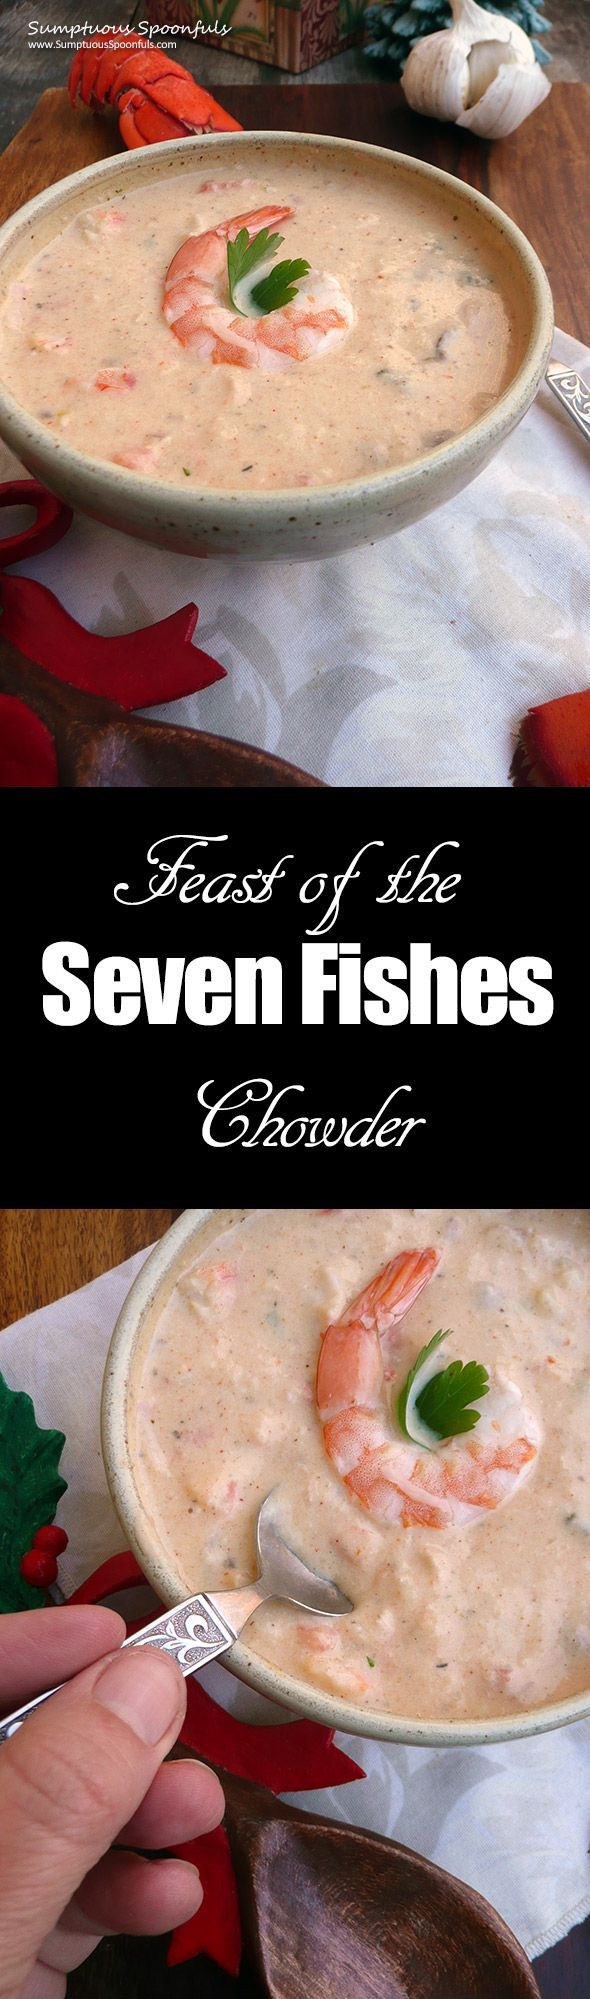 Feast of the Seven Fishes Chowder ~ Sumptuous Spoonfuls #seafood #chowder #recipe